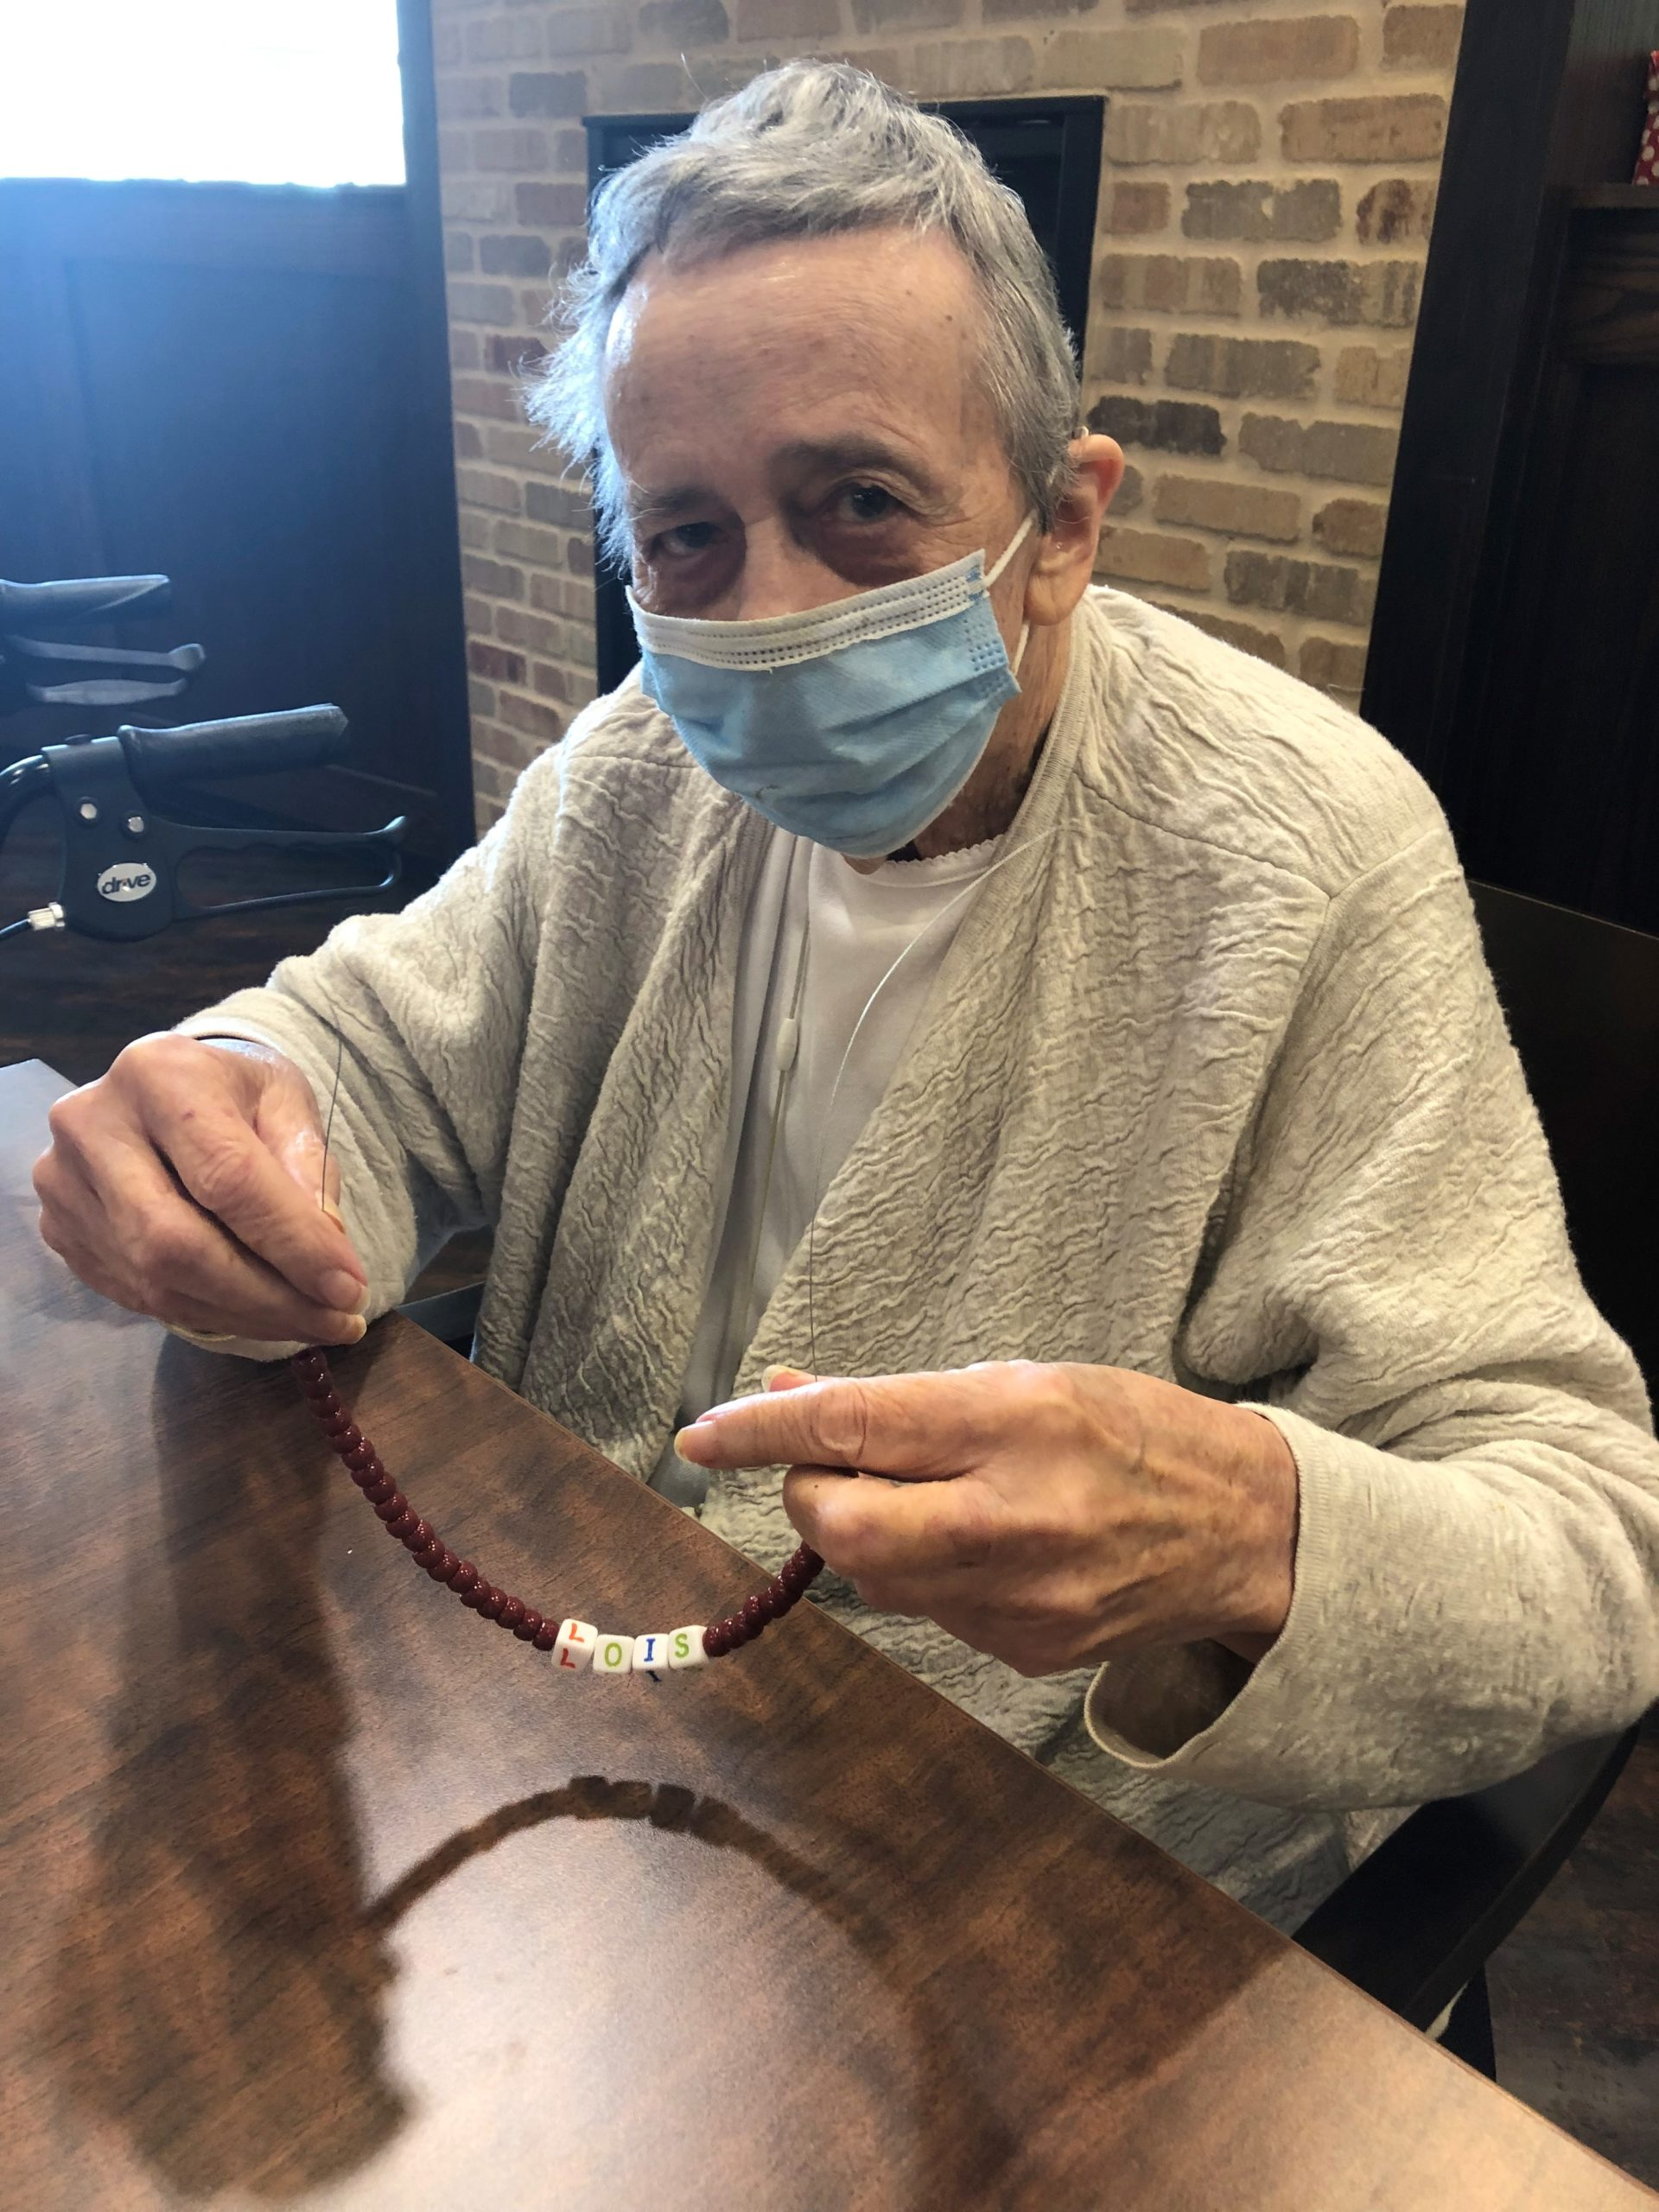 For our first September Craft Club project residents created beaded lanyards to attach to their facemasks so they won't lose them! Lois decided to spell out her name on her lanyard!